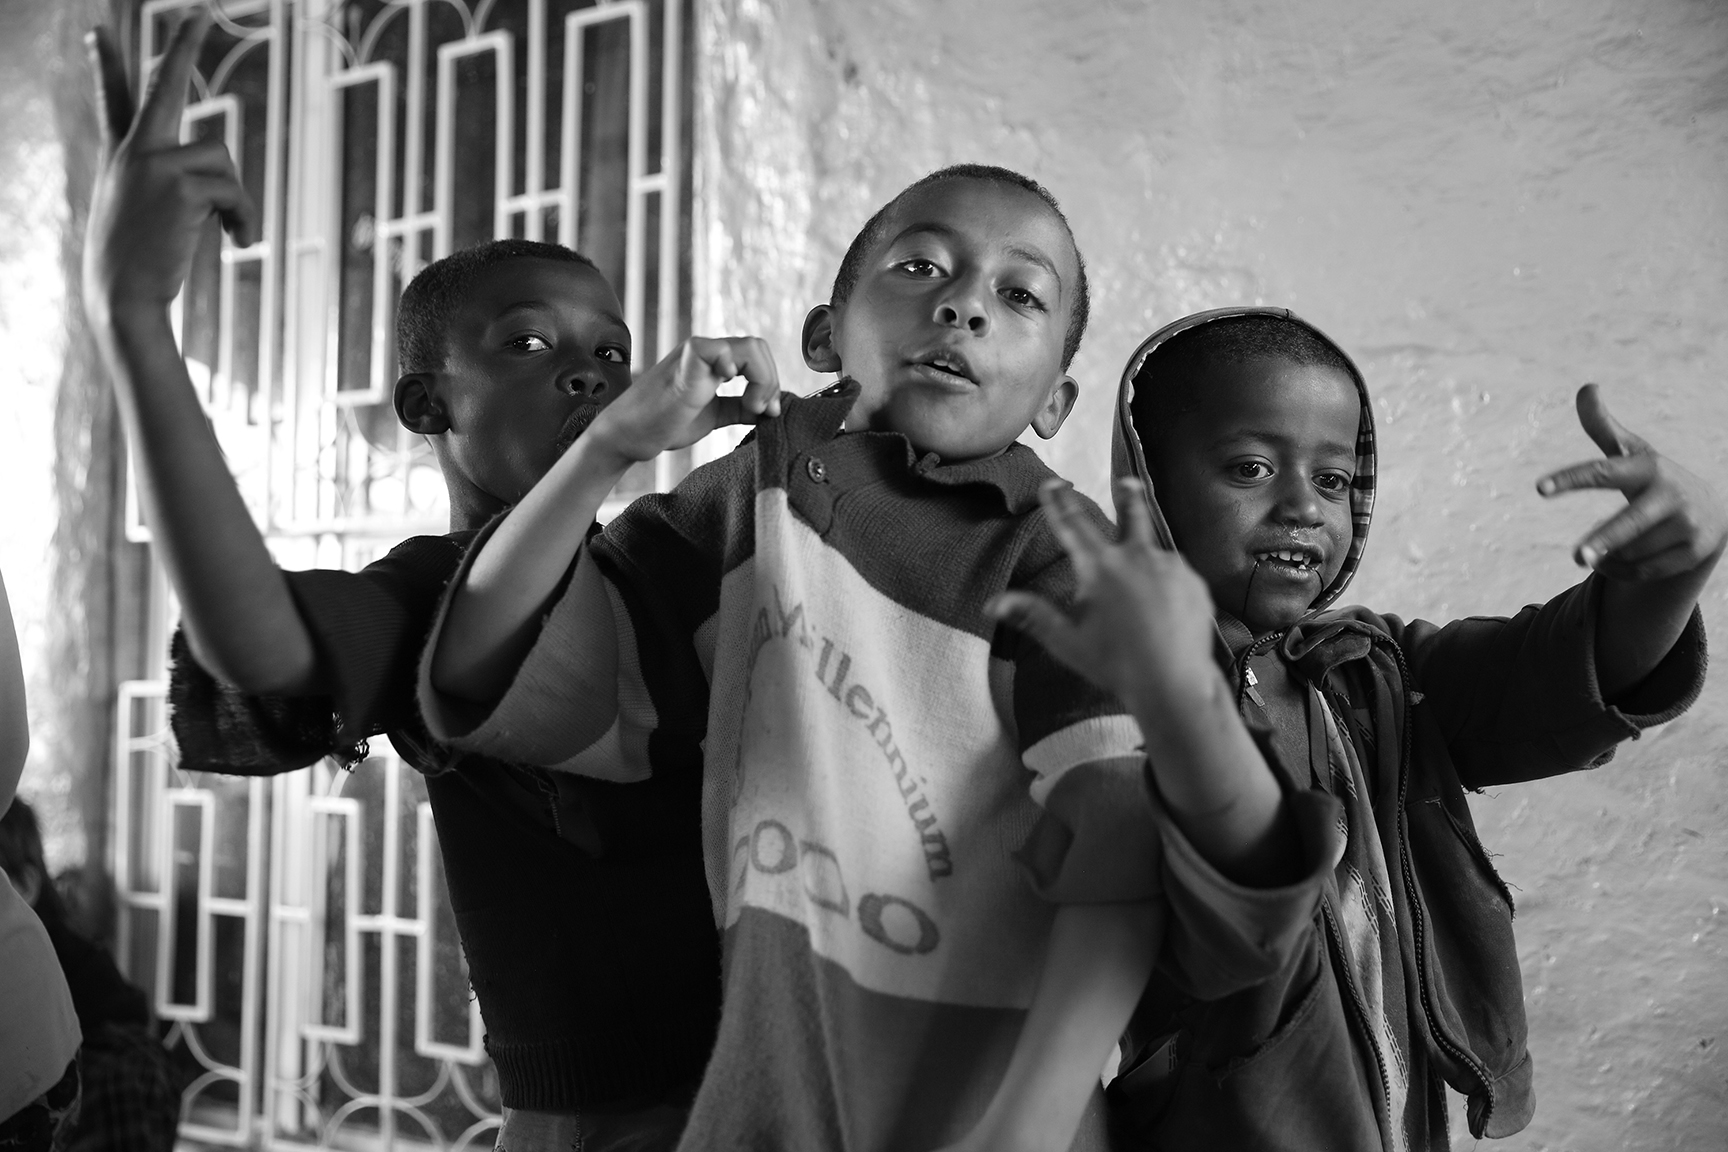 Children in Addis Ababa